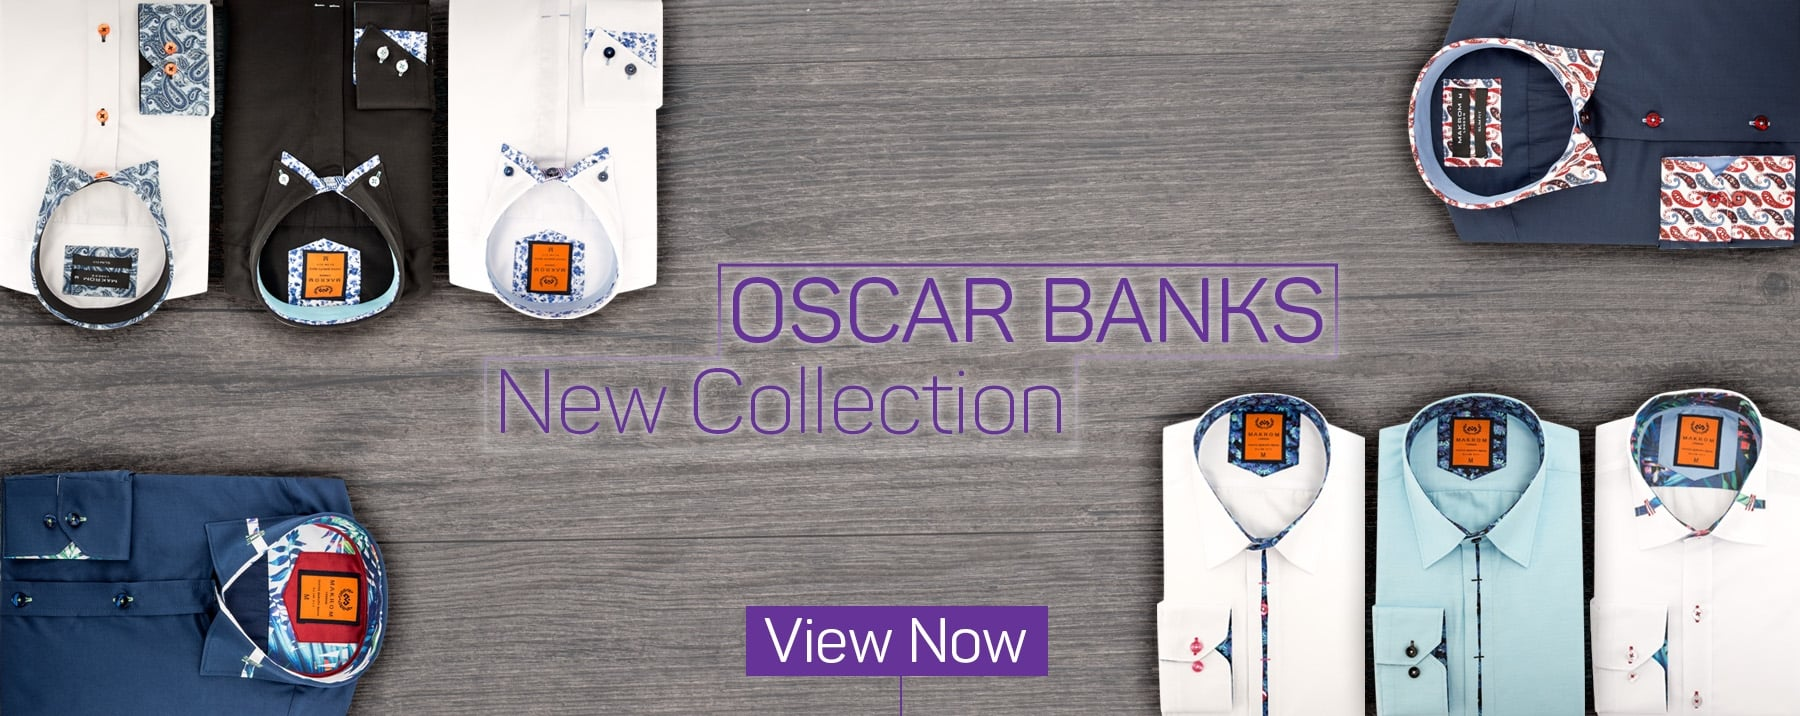 NEW IN OSCAR BANKS